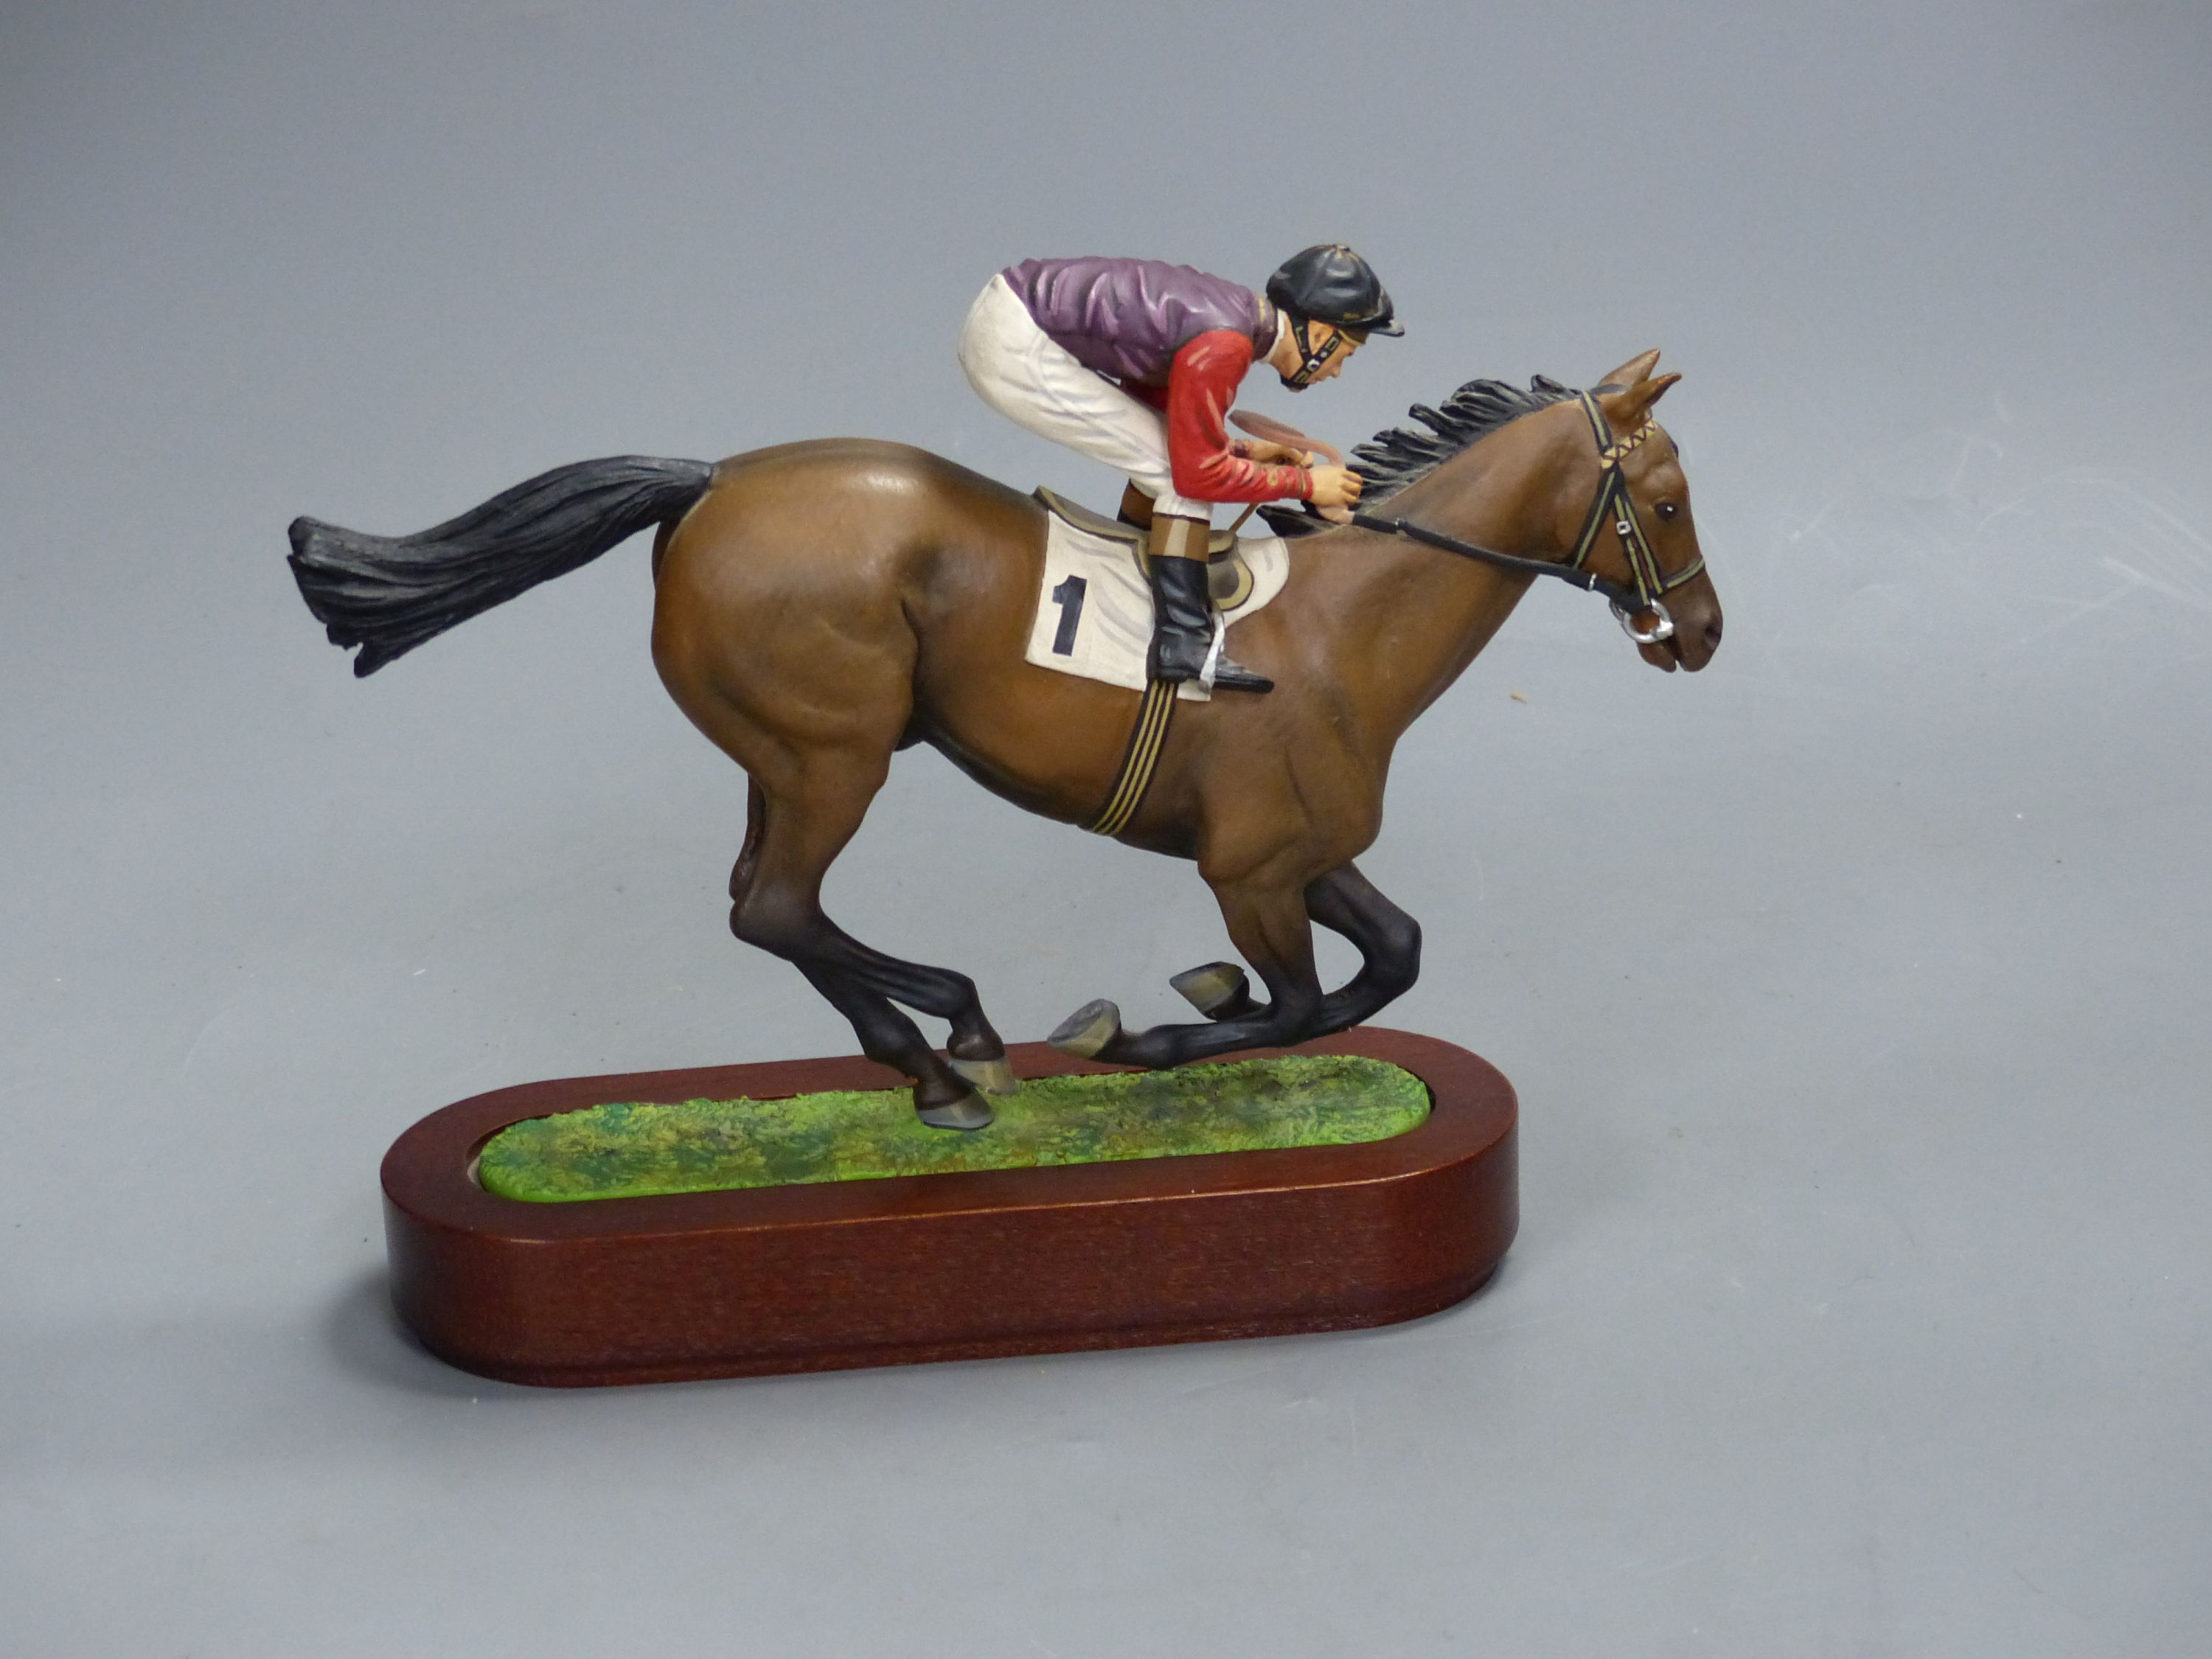 A Cameron Sculptures cold-painted bronze model of a racehorse with jockey up, height 16.5cm - Image 2 of 3